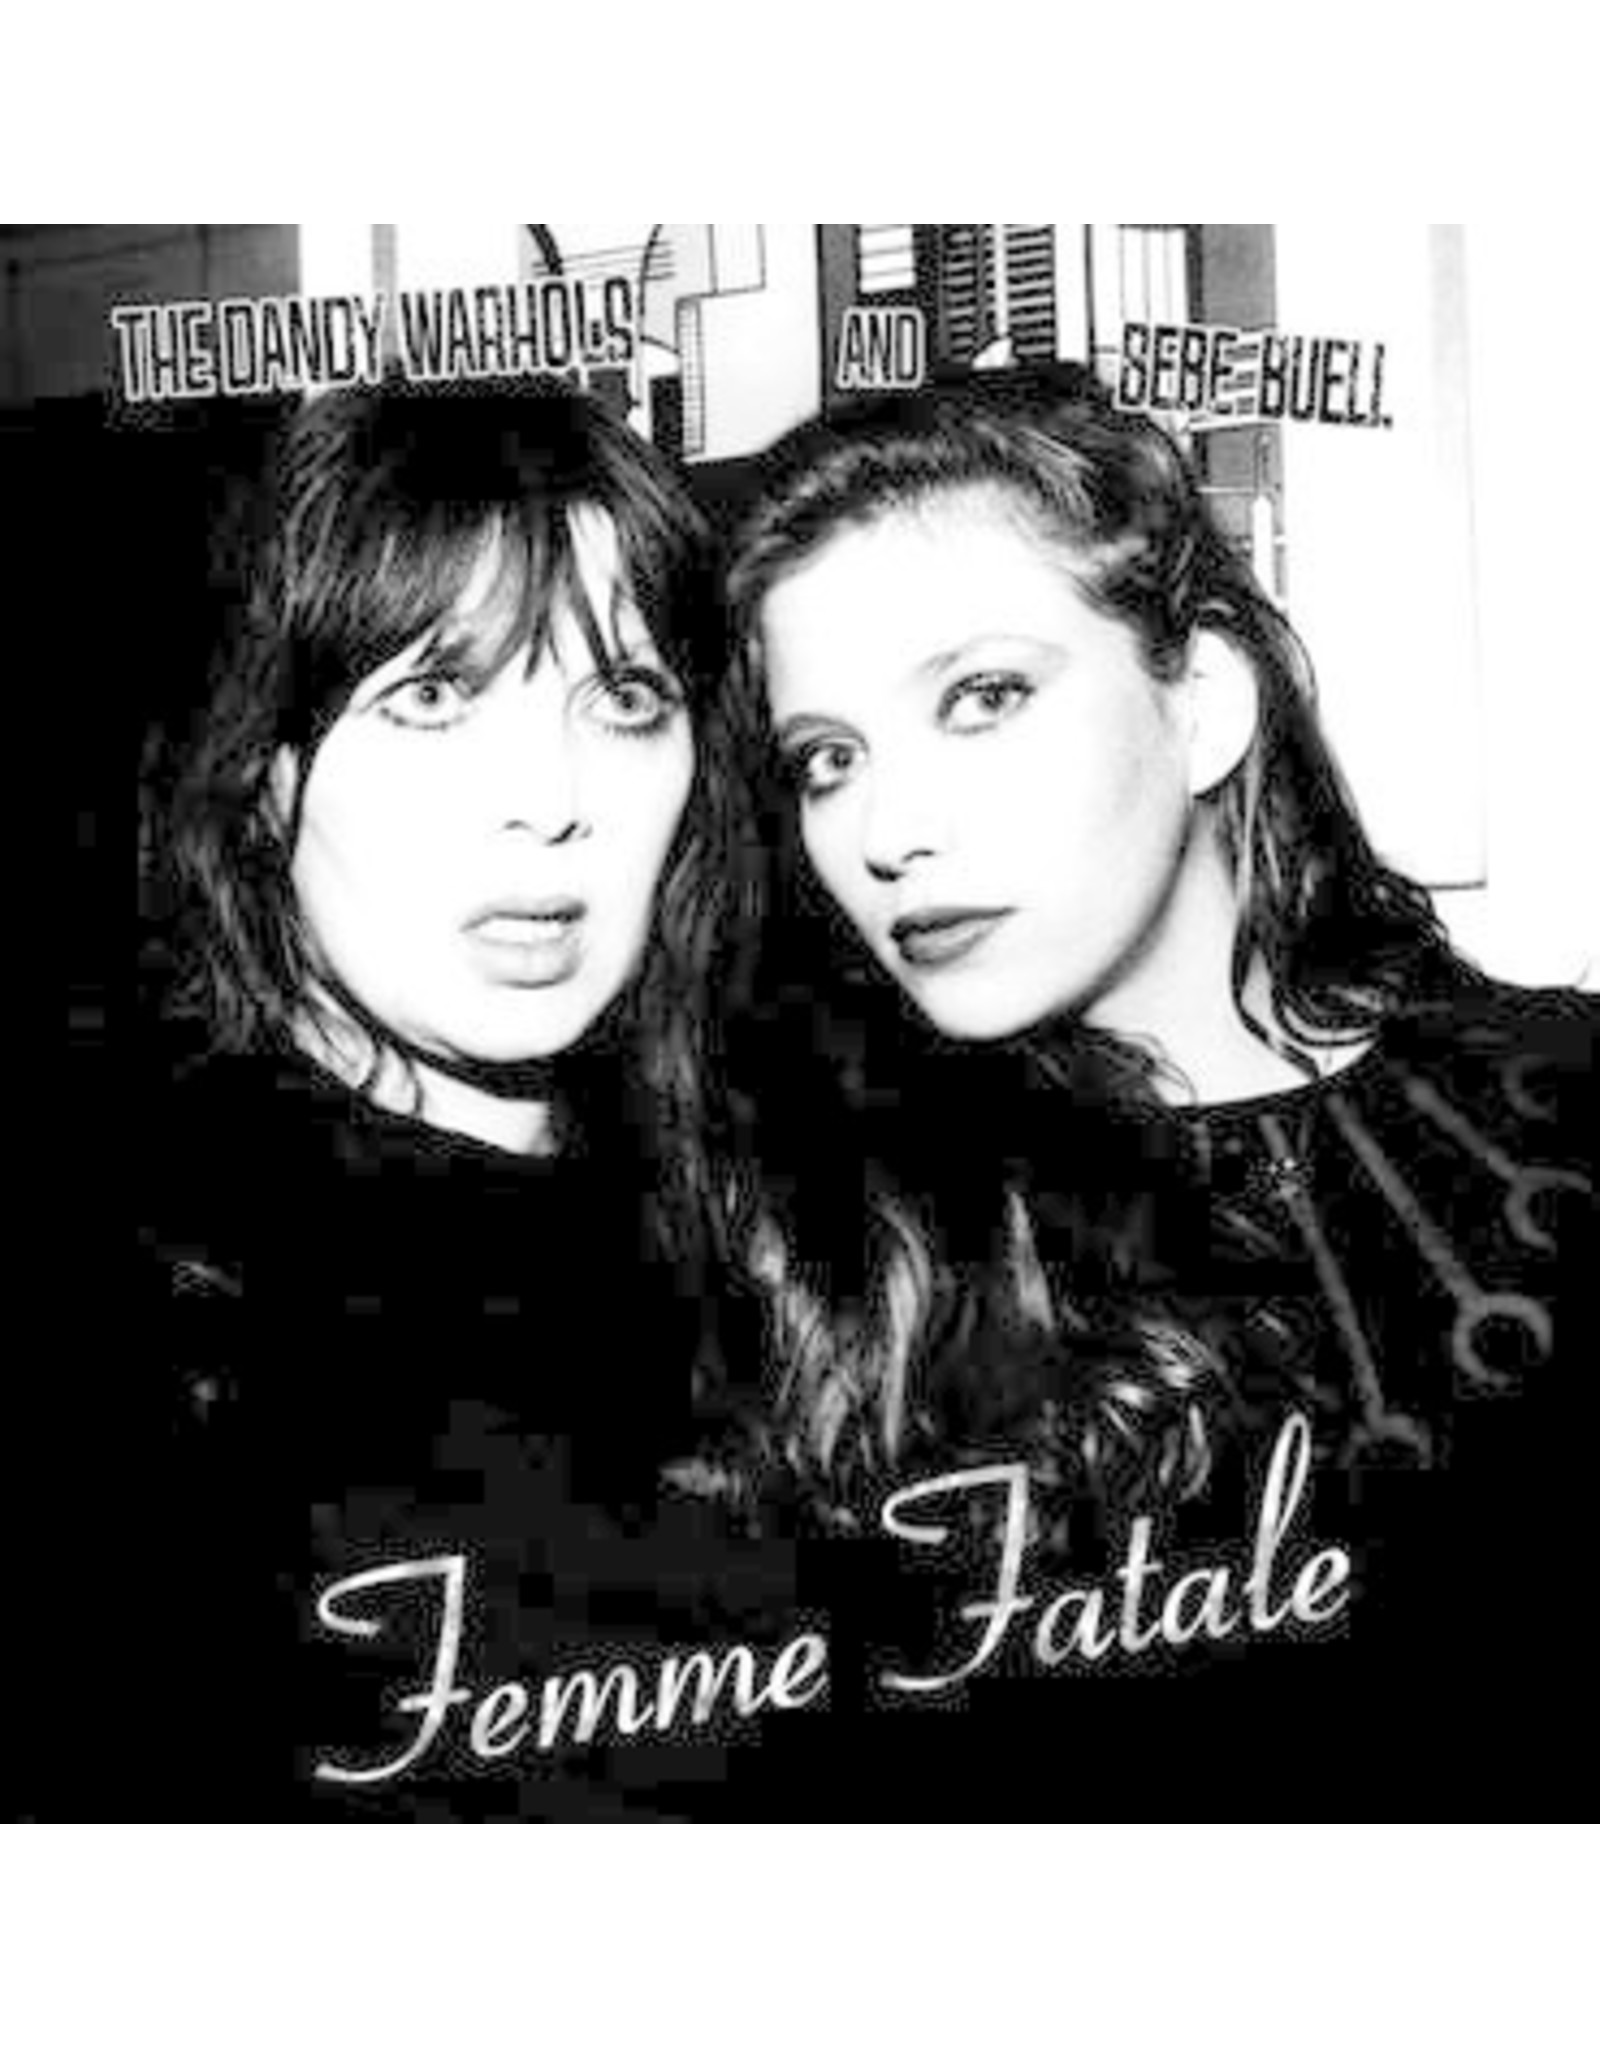 Dandy Warhols And Bebe Buell - Femme Fatale (White Vinyl) [Record Store Day]